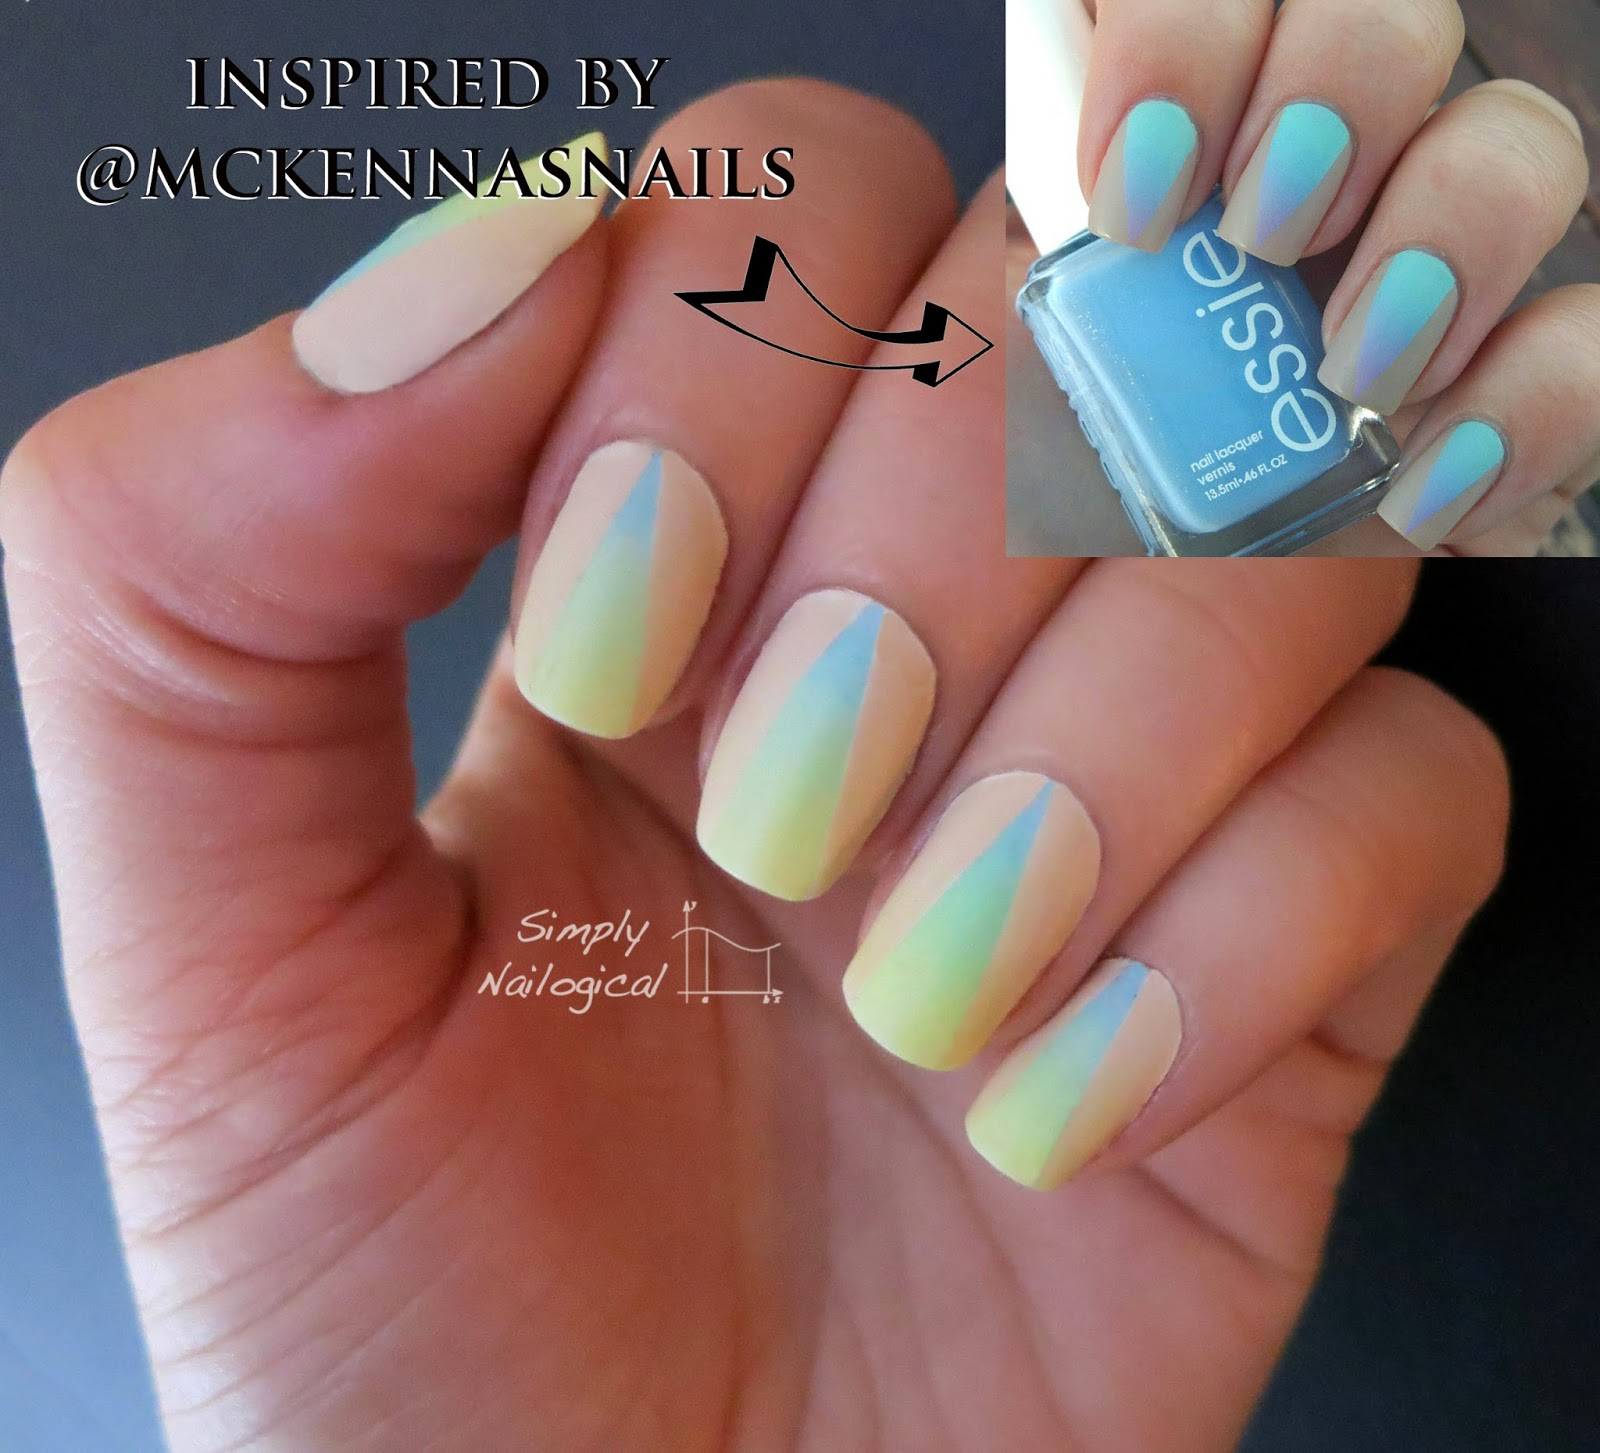 Simply Nailogical: Neutral triangle over soft neon gradient